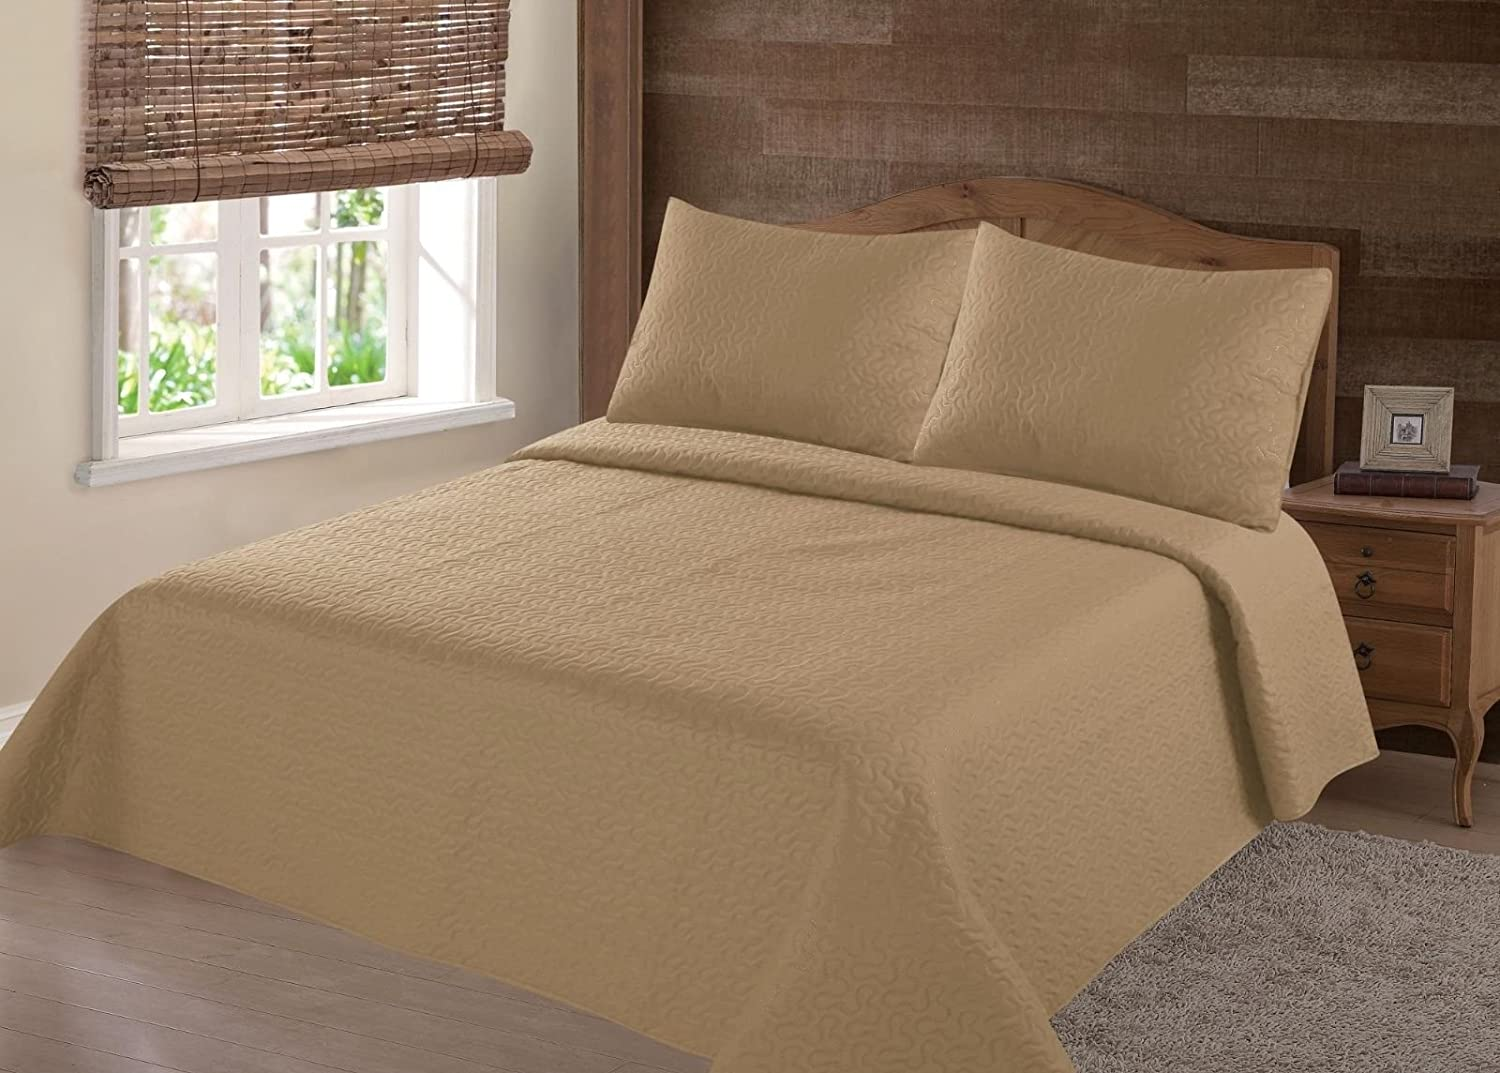 NENA Yellow Solid Hypoallergenic Quilt Bedspread Bed Bedding Coverlets Cover